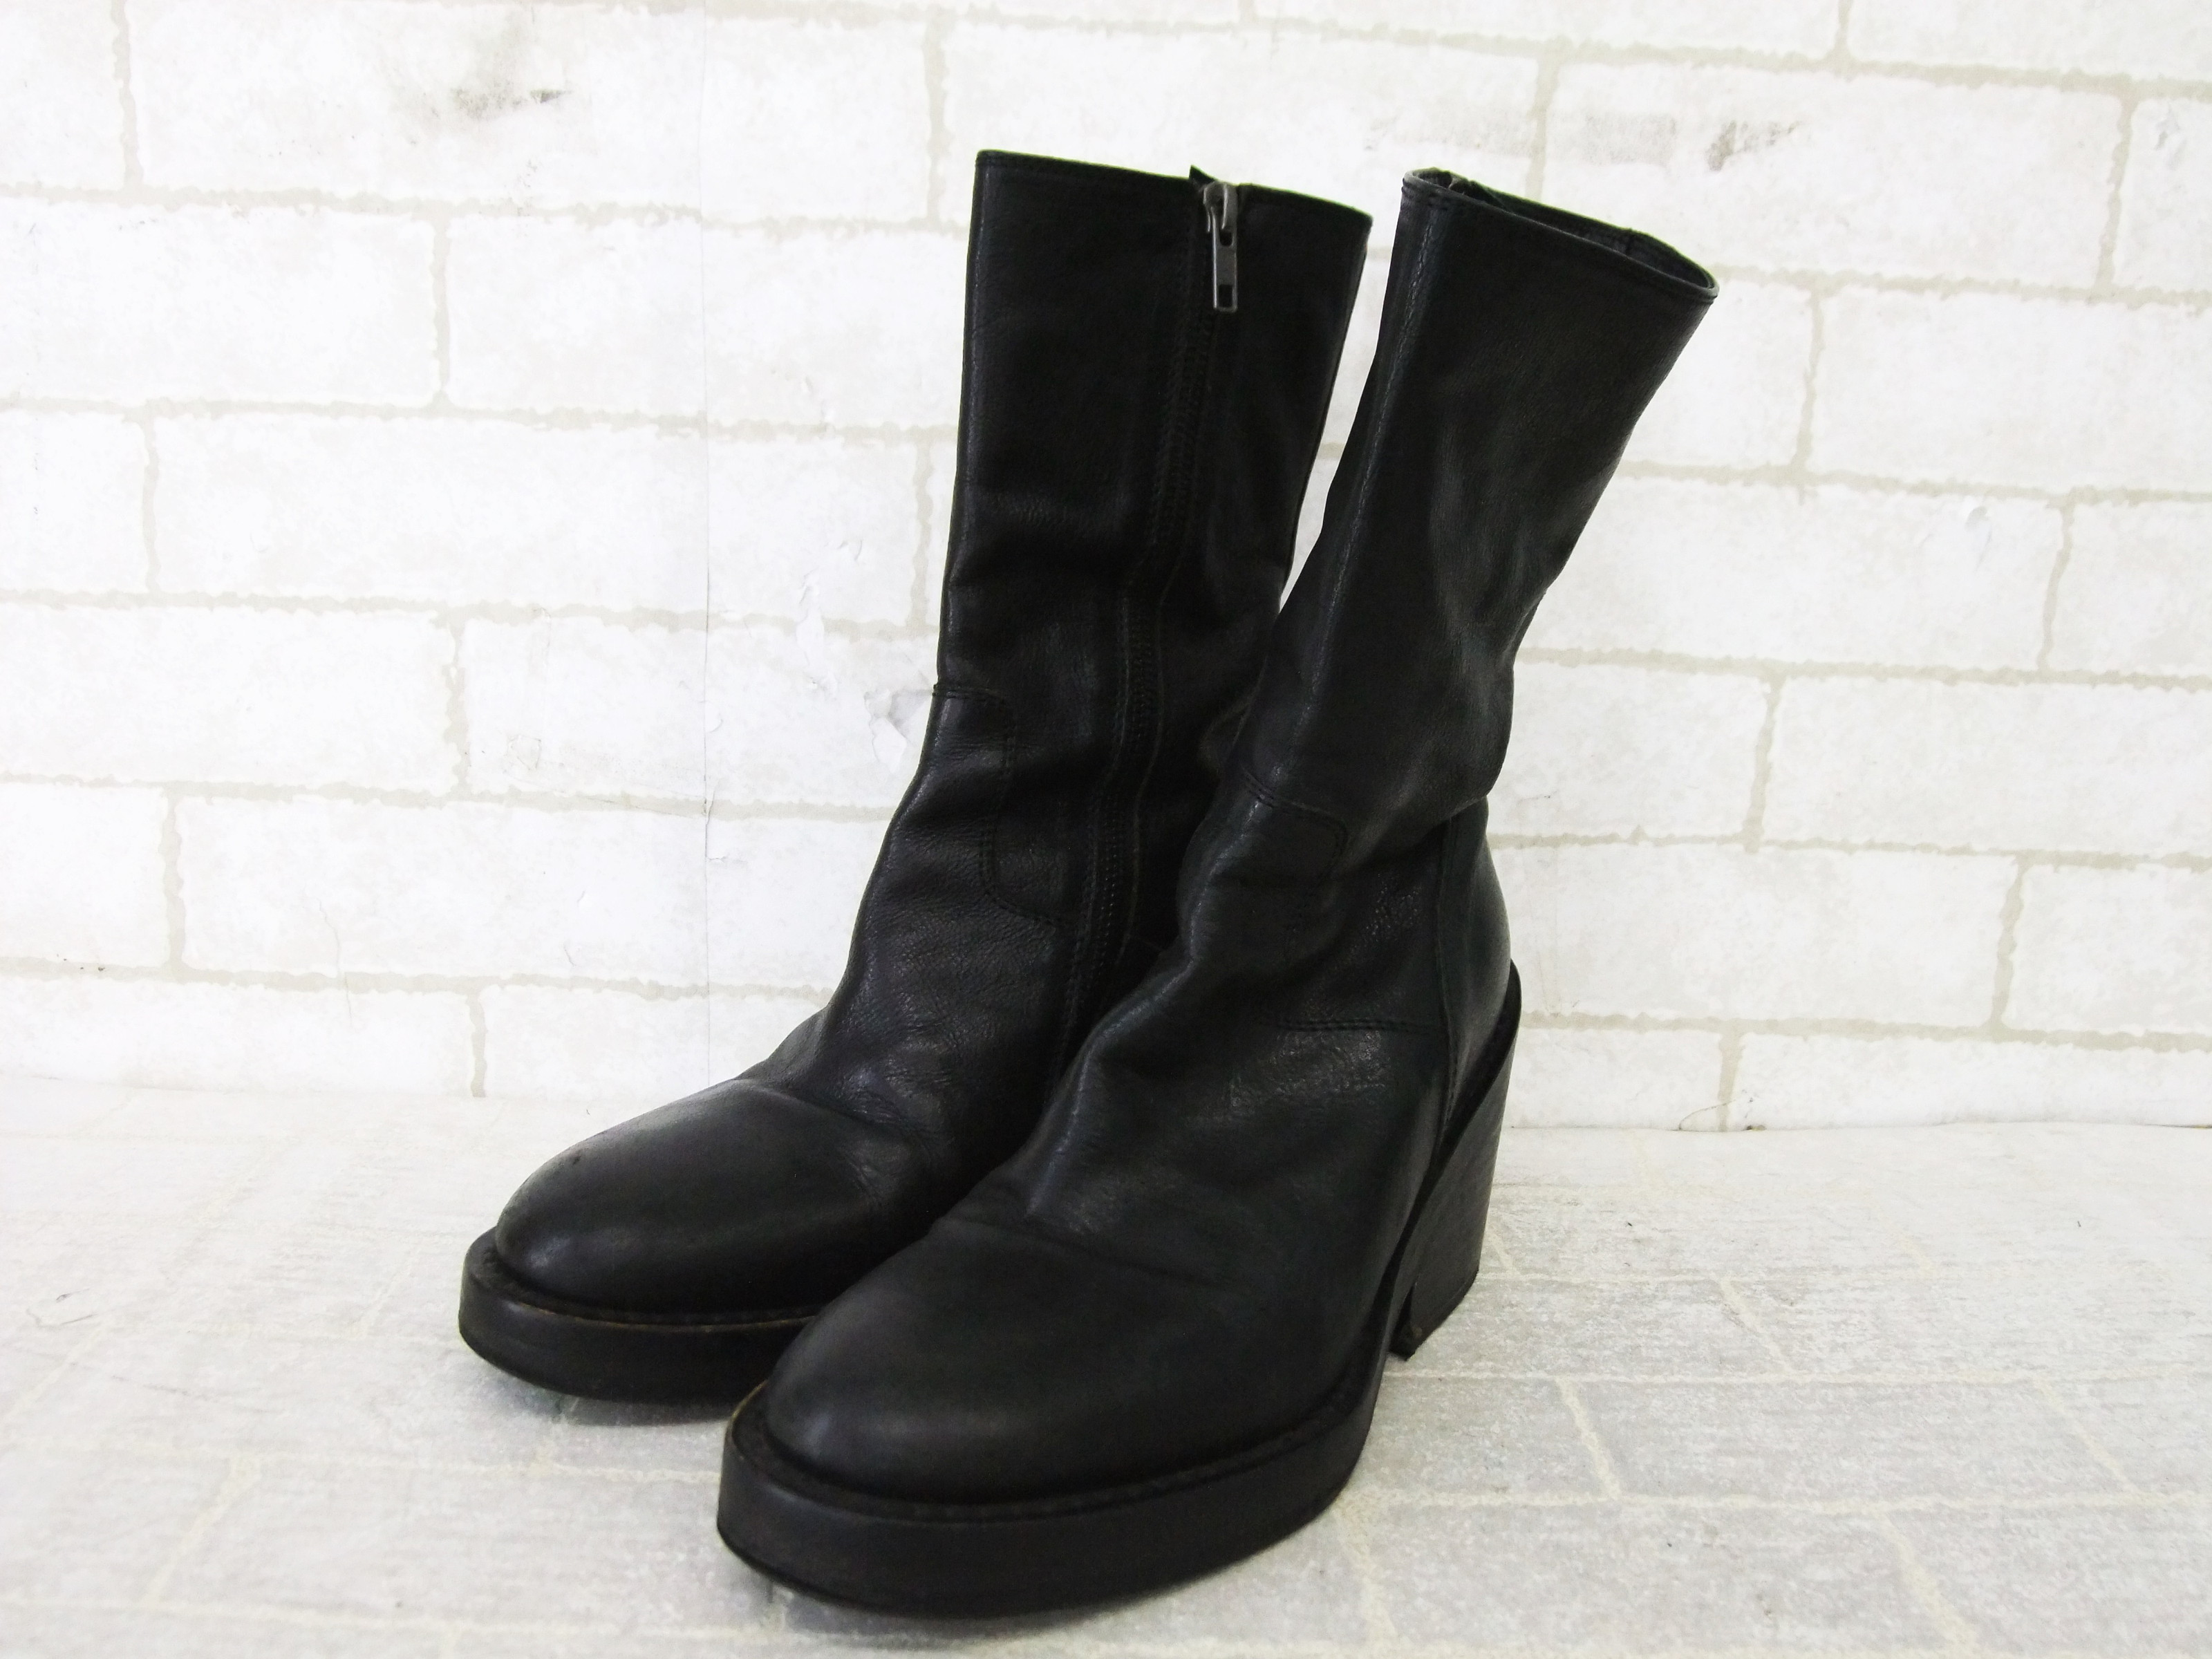 97ff09915972 Absurdly amazing Ann Demeulemeester zip-up mid-calf boots bought from  Rakuten, totalling around 200 CAD shipped. I saw them here on Rosenrot's  blog and fell ...